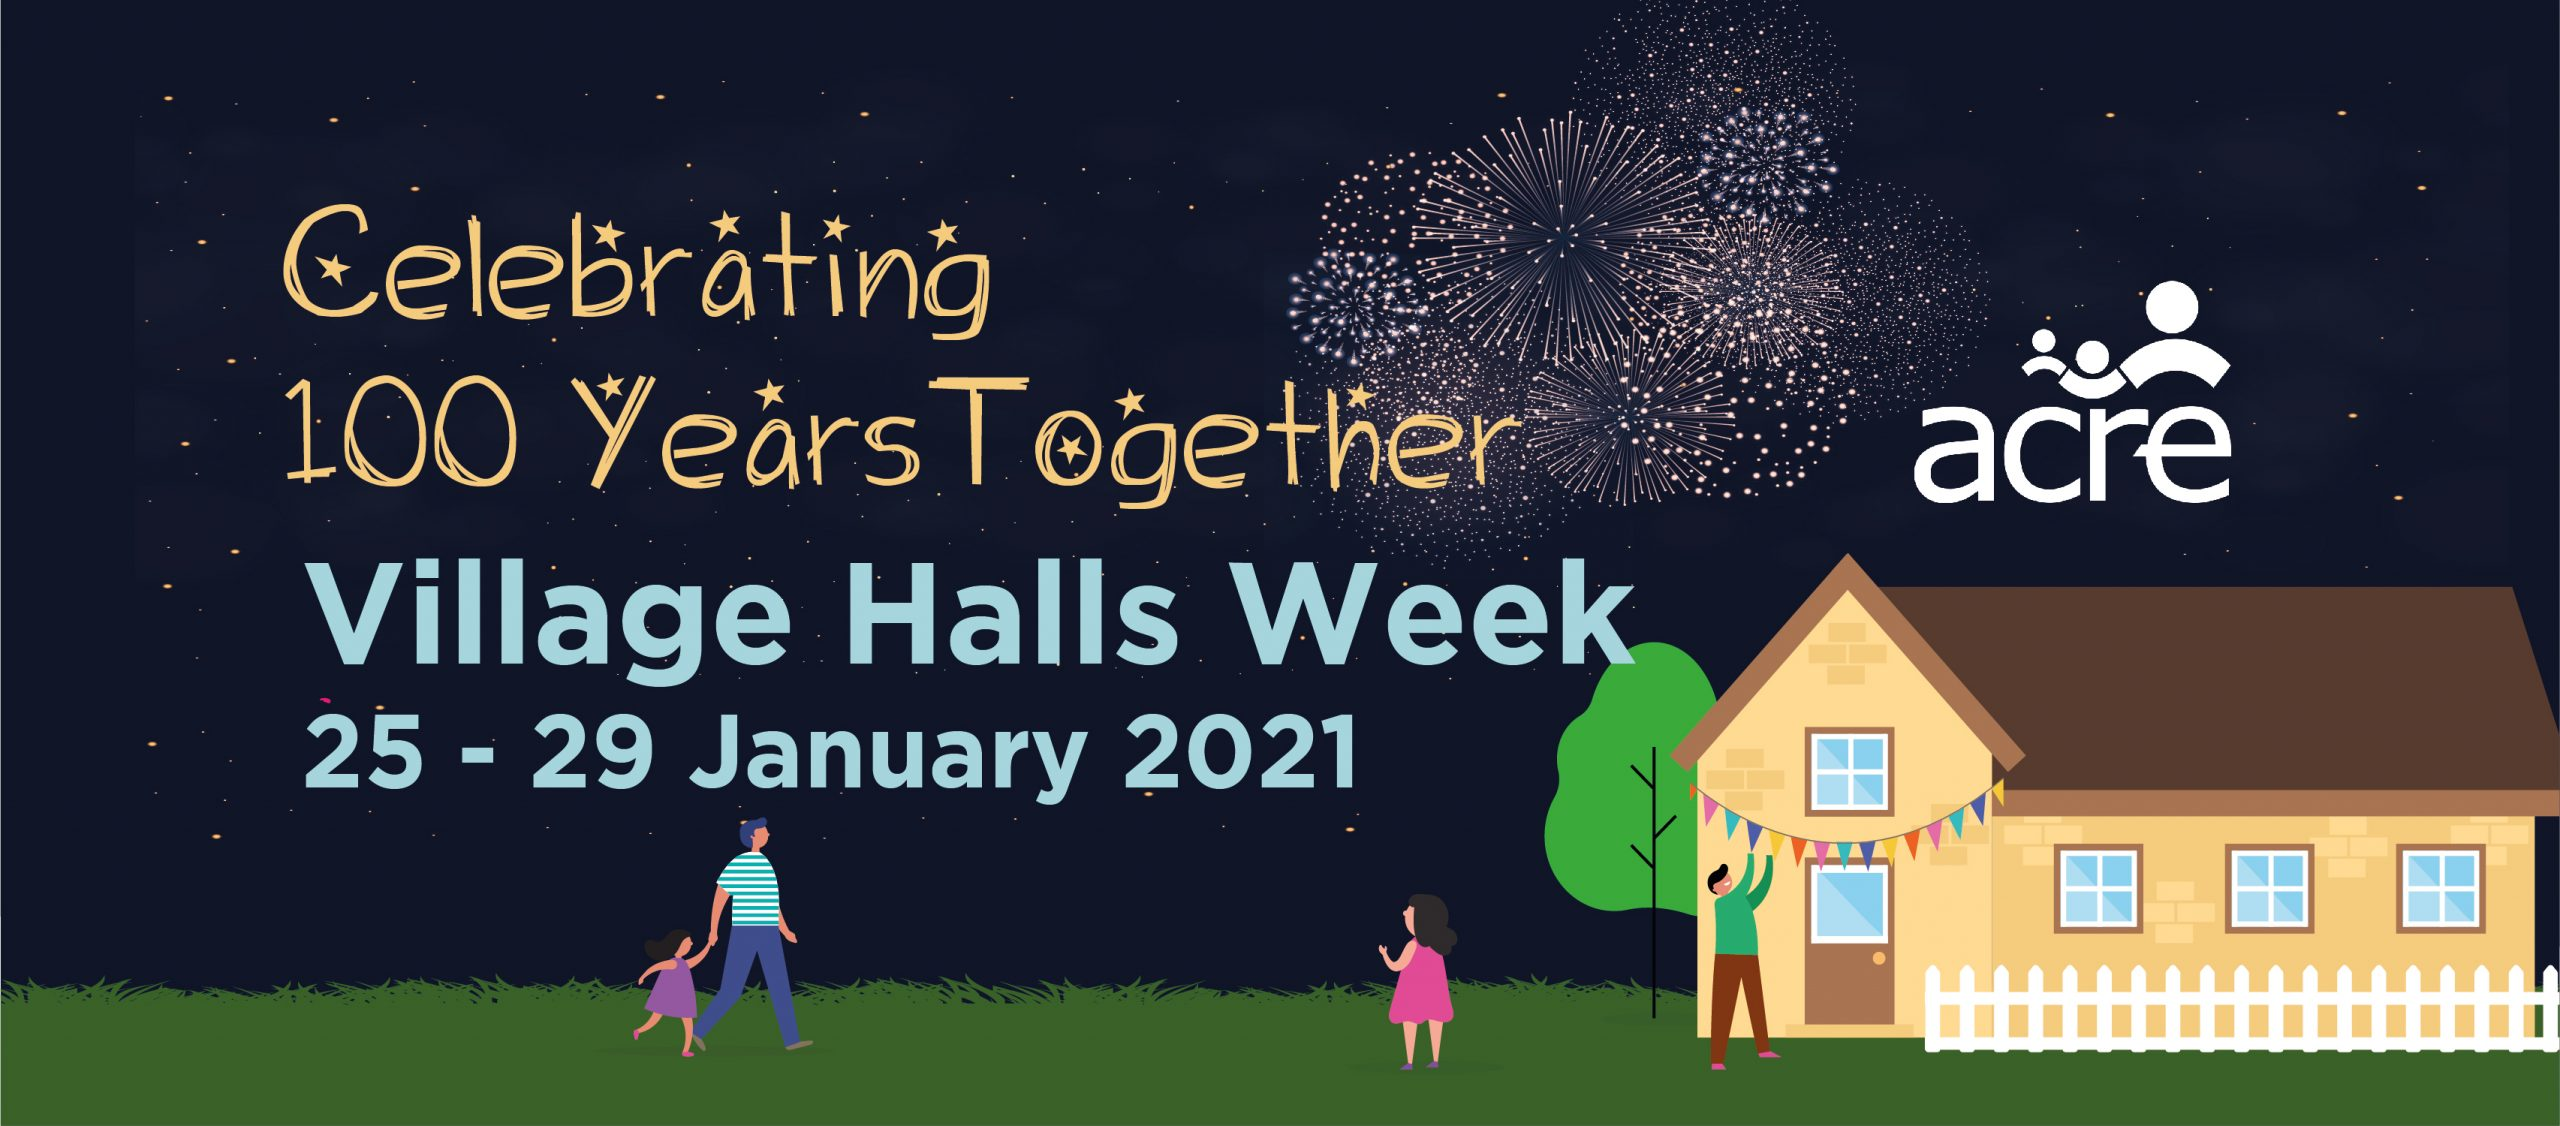 Village Halls Week 25th – 29th January 2021 Celebrating 100 Years Together